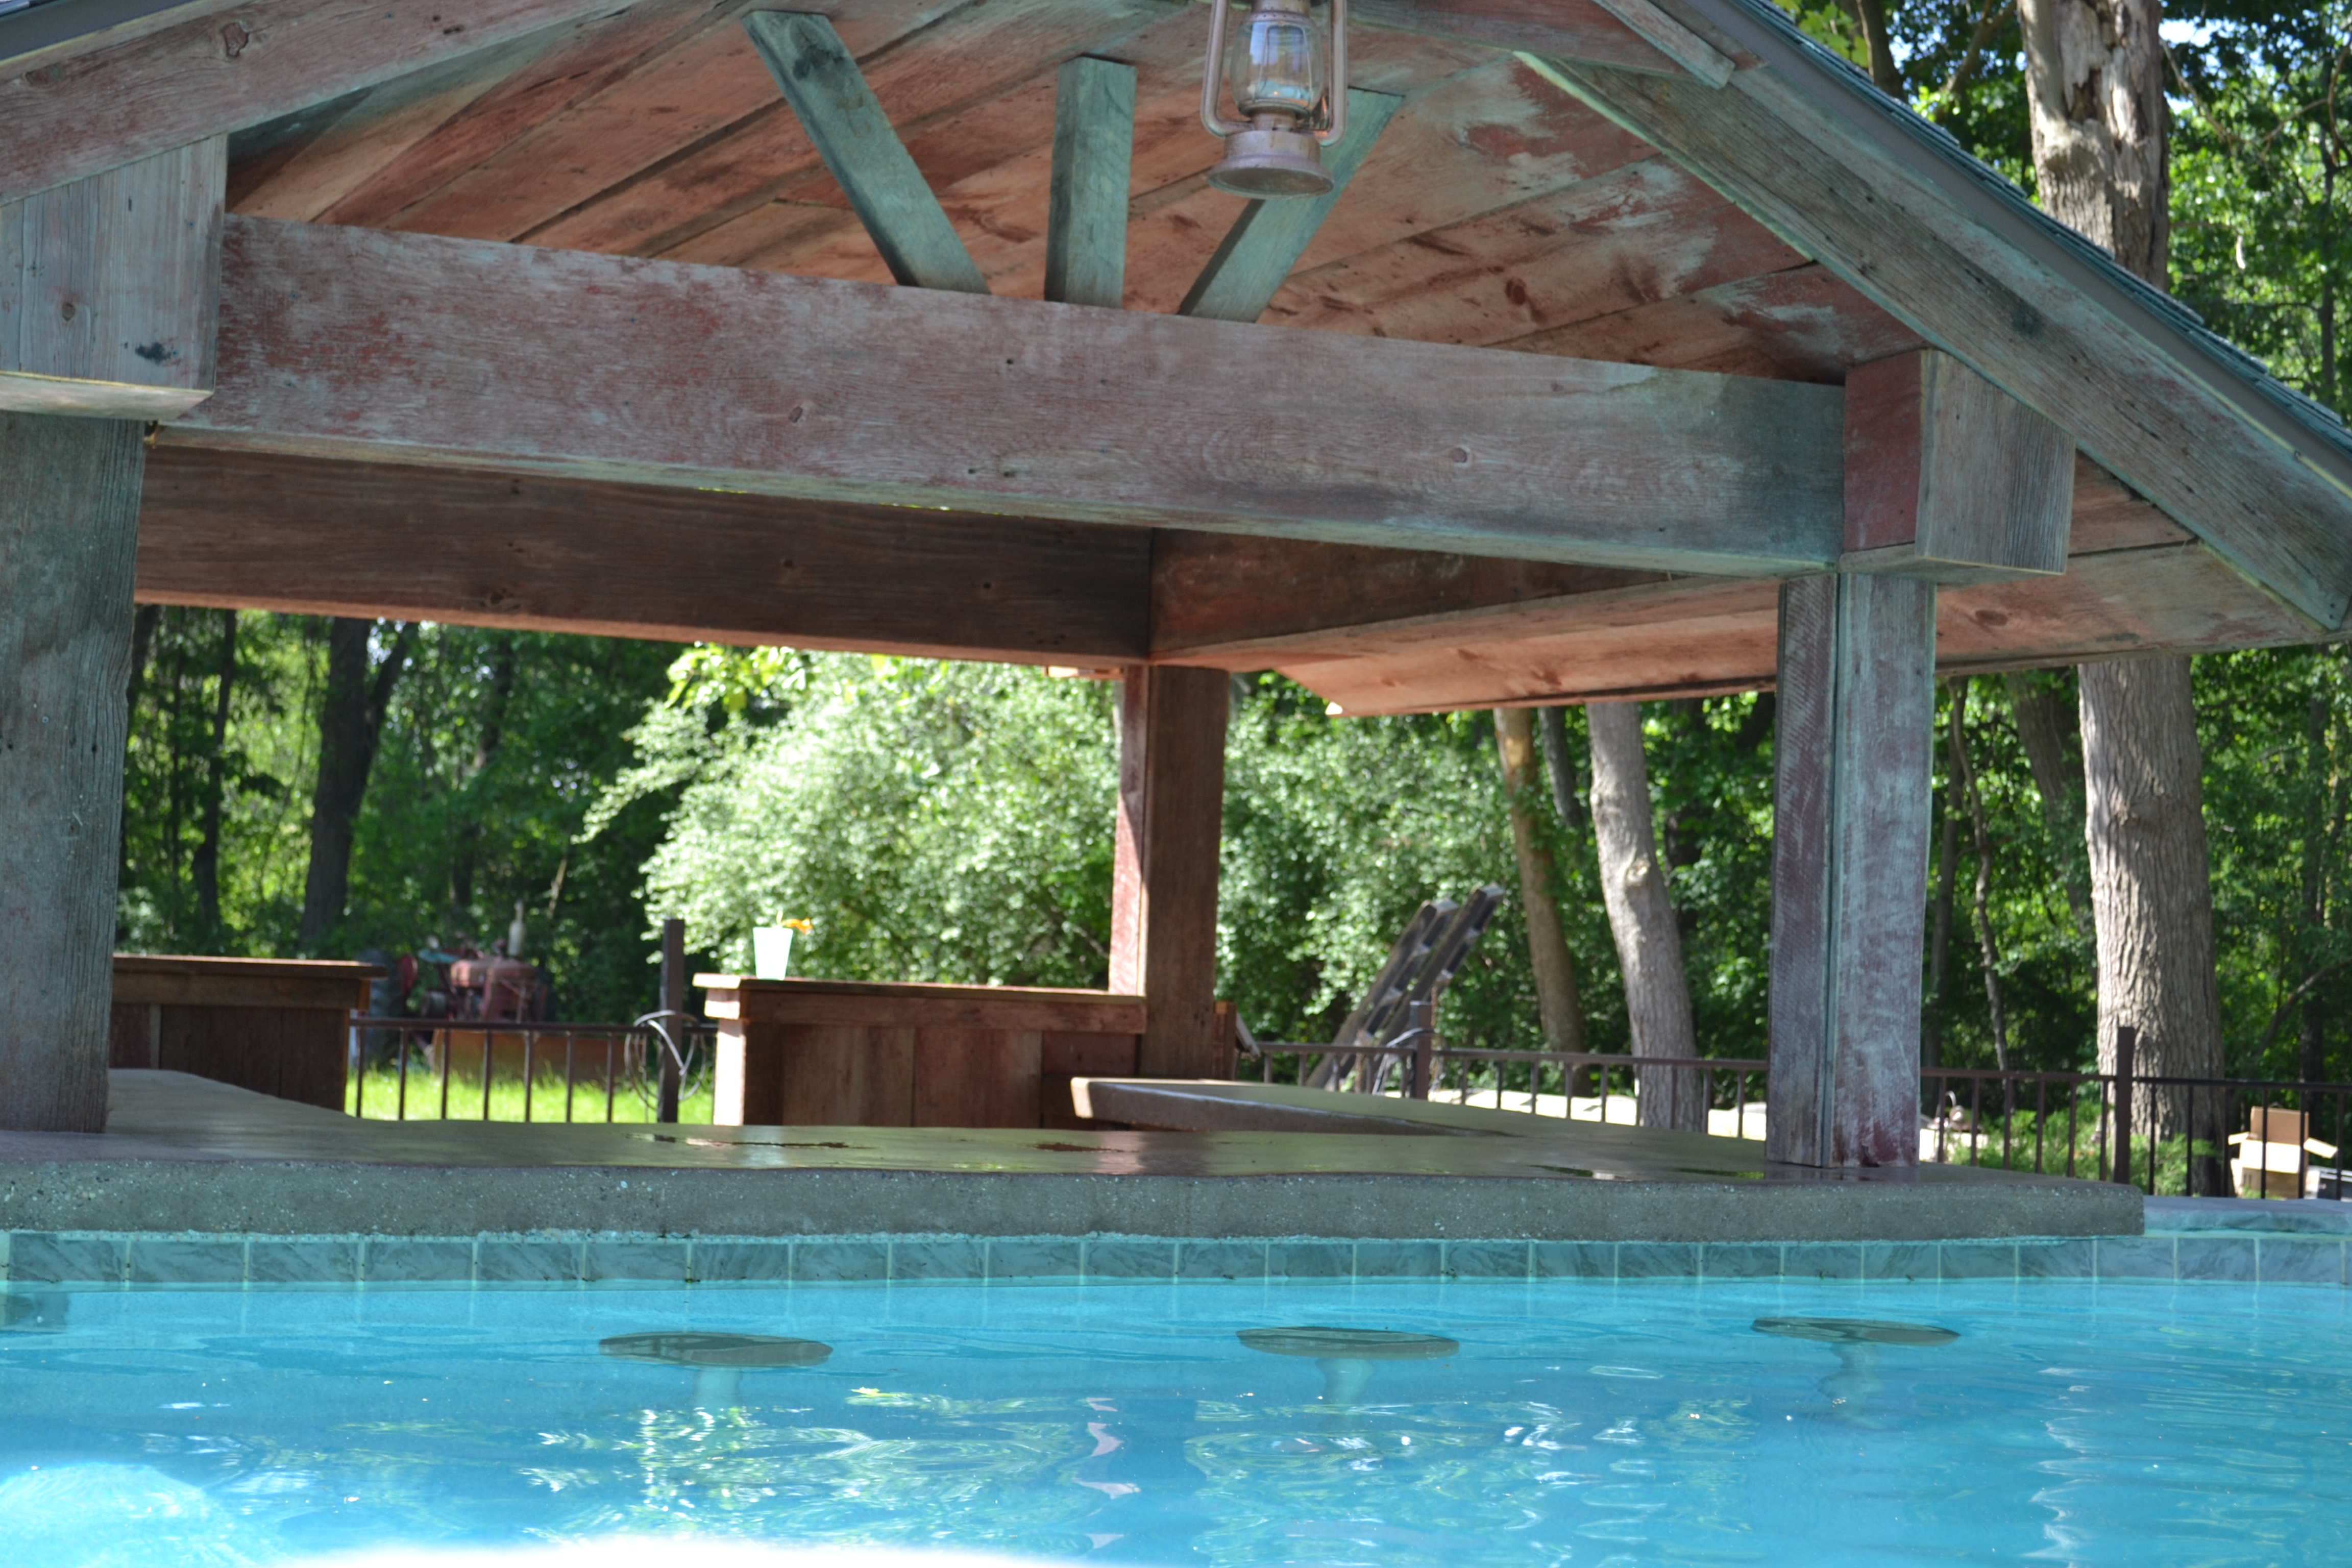 Swim Up Bar with Reclaimed Barn Timbers - Custom Michigan Swimming Pool by Legendary Escapes